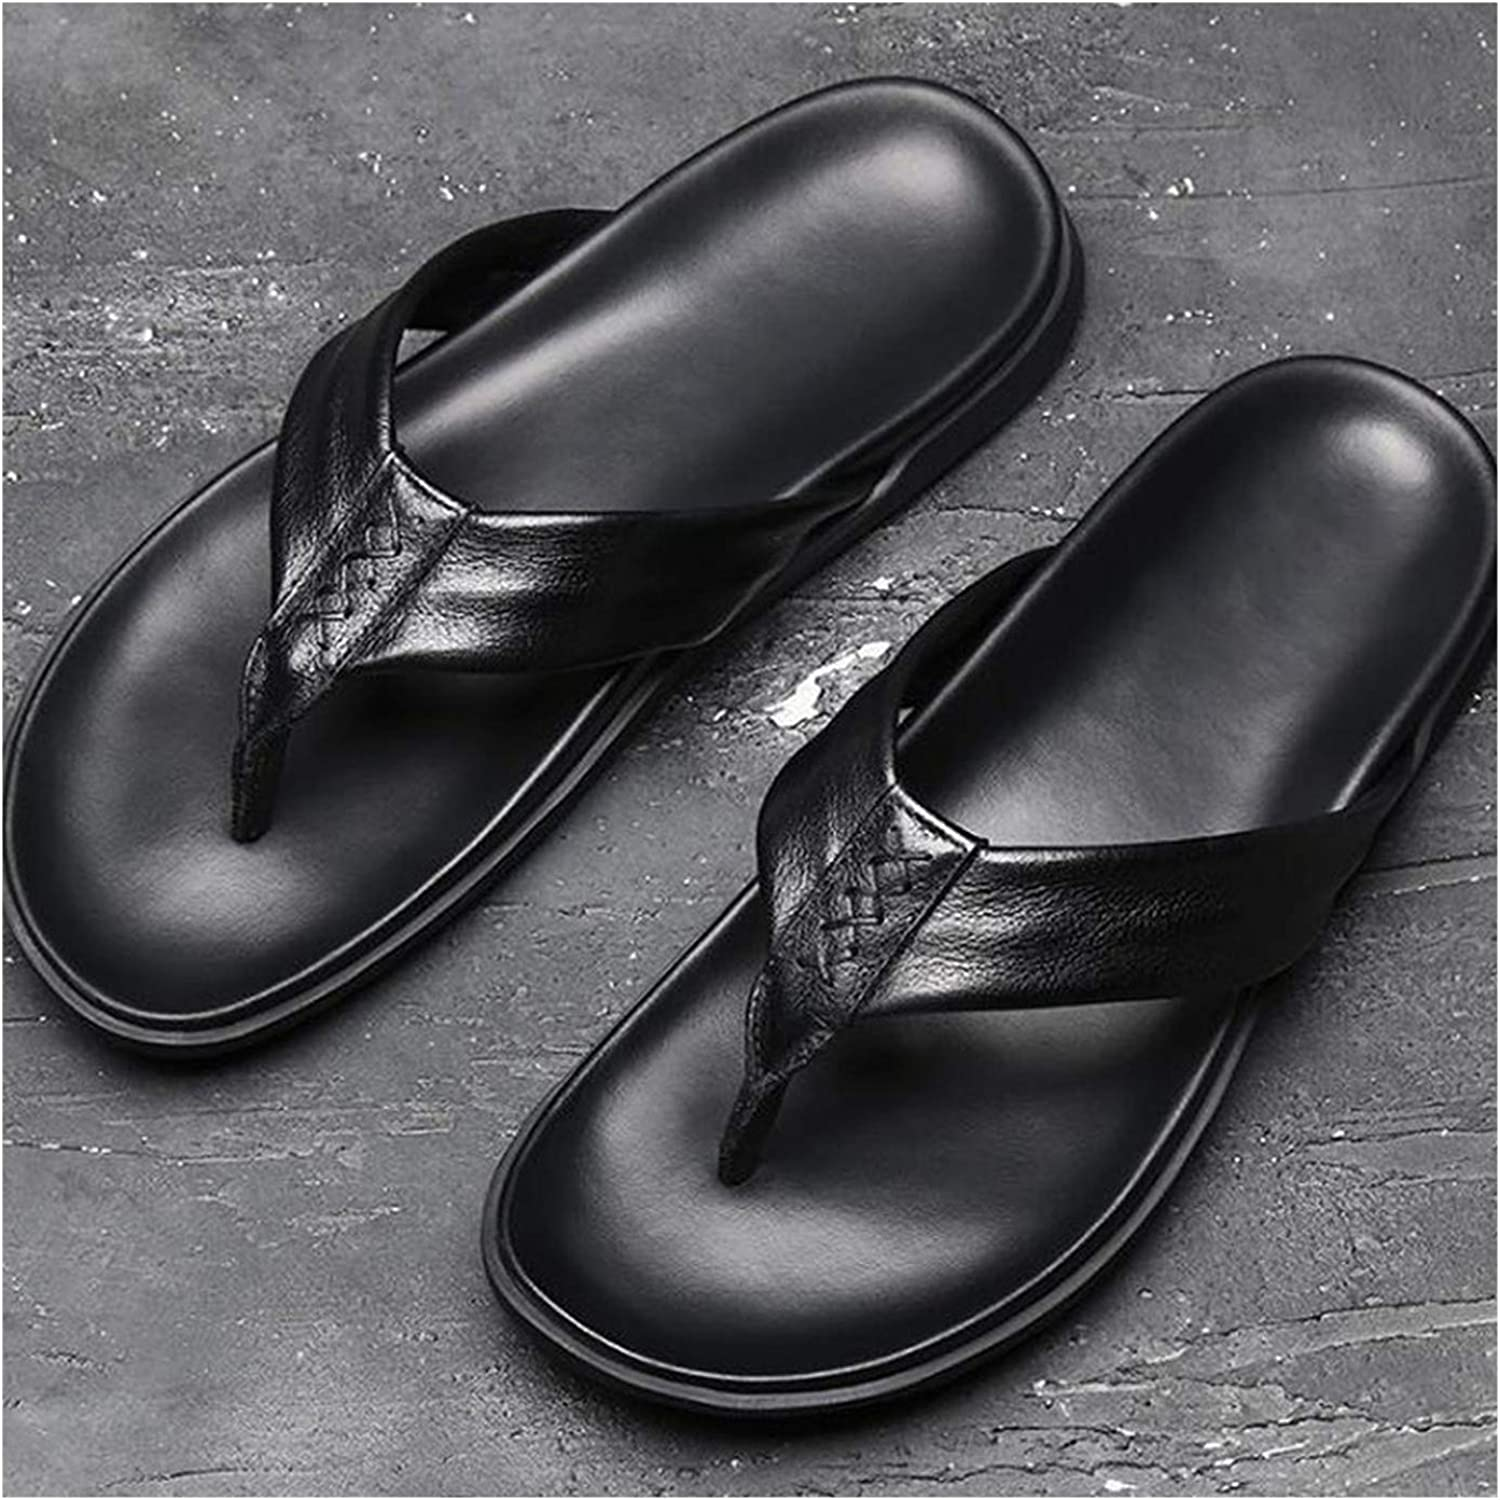 Wood-1 Men Summer Real Leather Flip Flop Slippers Boys Casual Sandals Leisure Man Touring shoes